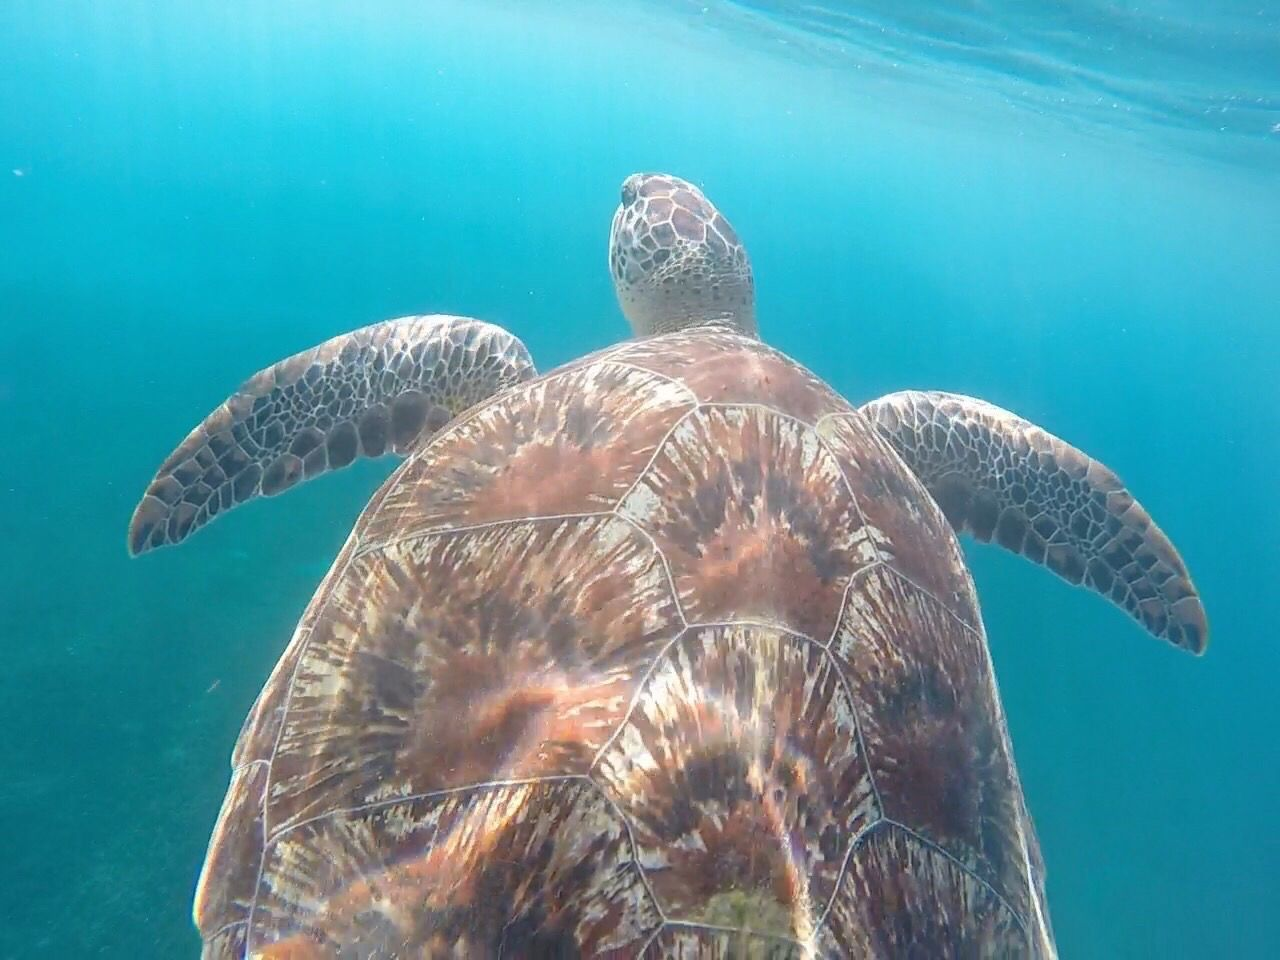 Travel Destinations Martinique Underwater Turtle Sea Life Animal Themes Sea Swimming Animals In The Wild UnderSea Water One Animal Nature Animal Wildlife Beauty In Nature No People Close-up Sea Turtle Day Outdoors https://youtu.be/2fYSAutD-zU